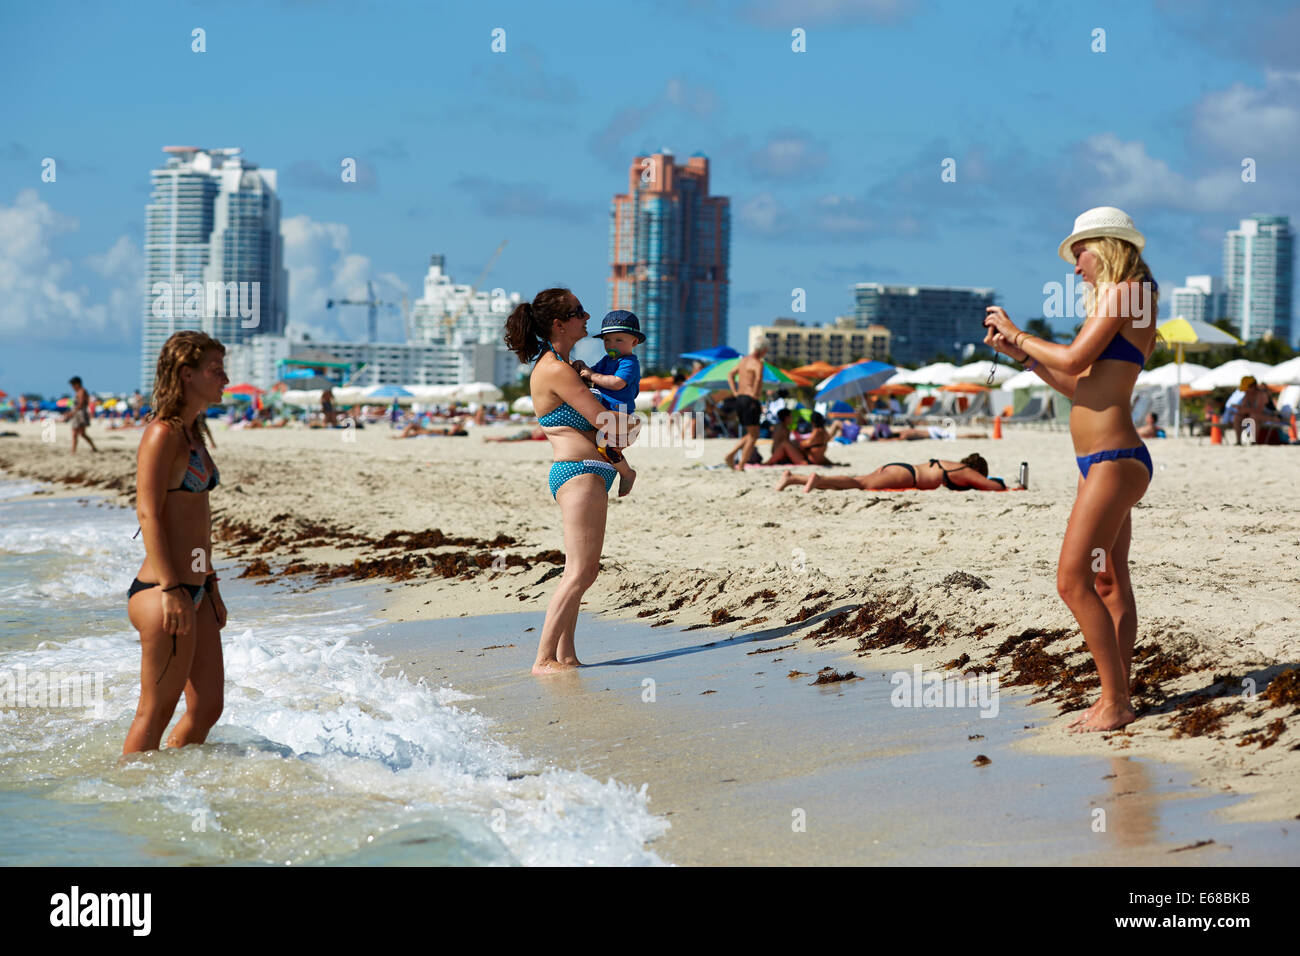 South Beach on Ocean Drive, Miami in Florida USA William Waugh Marie Barber - Stock Image